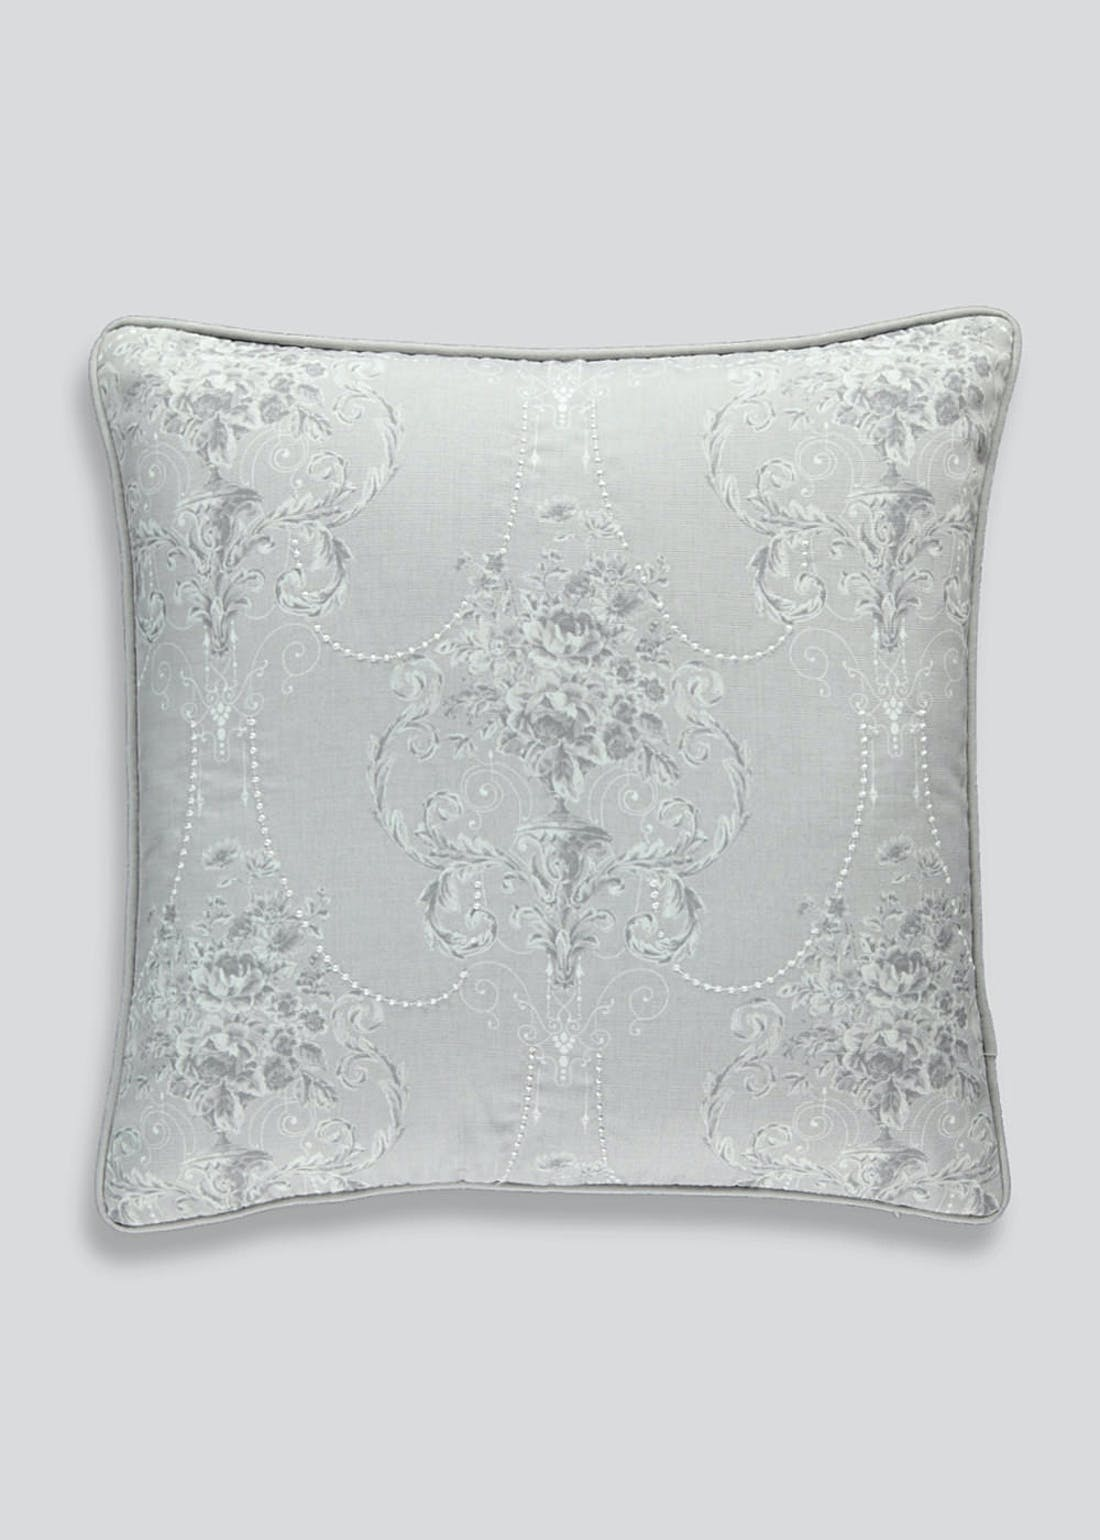 Embroidered Chandelier Cushion (46cm x 46cm)